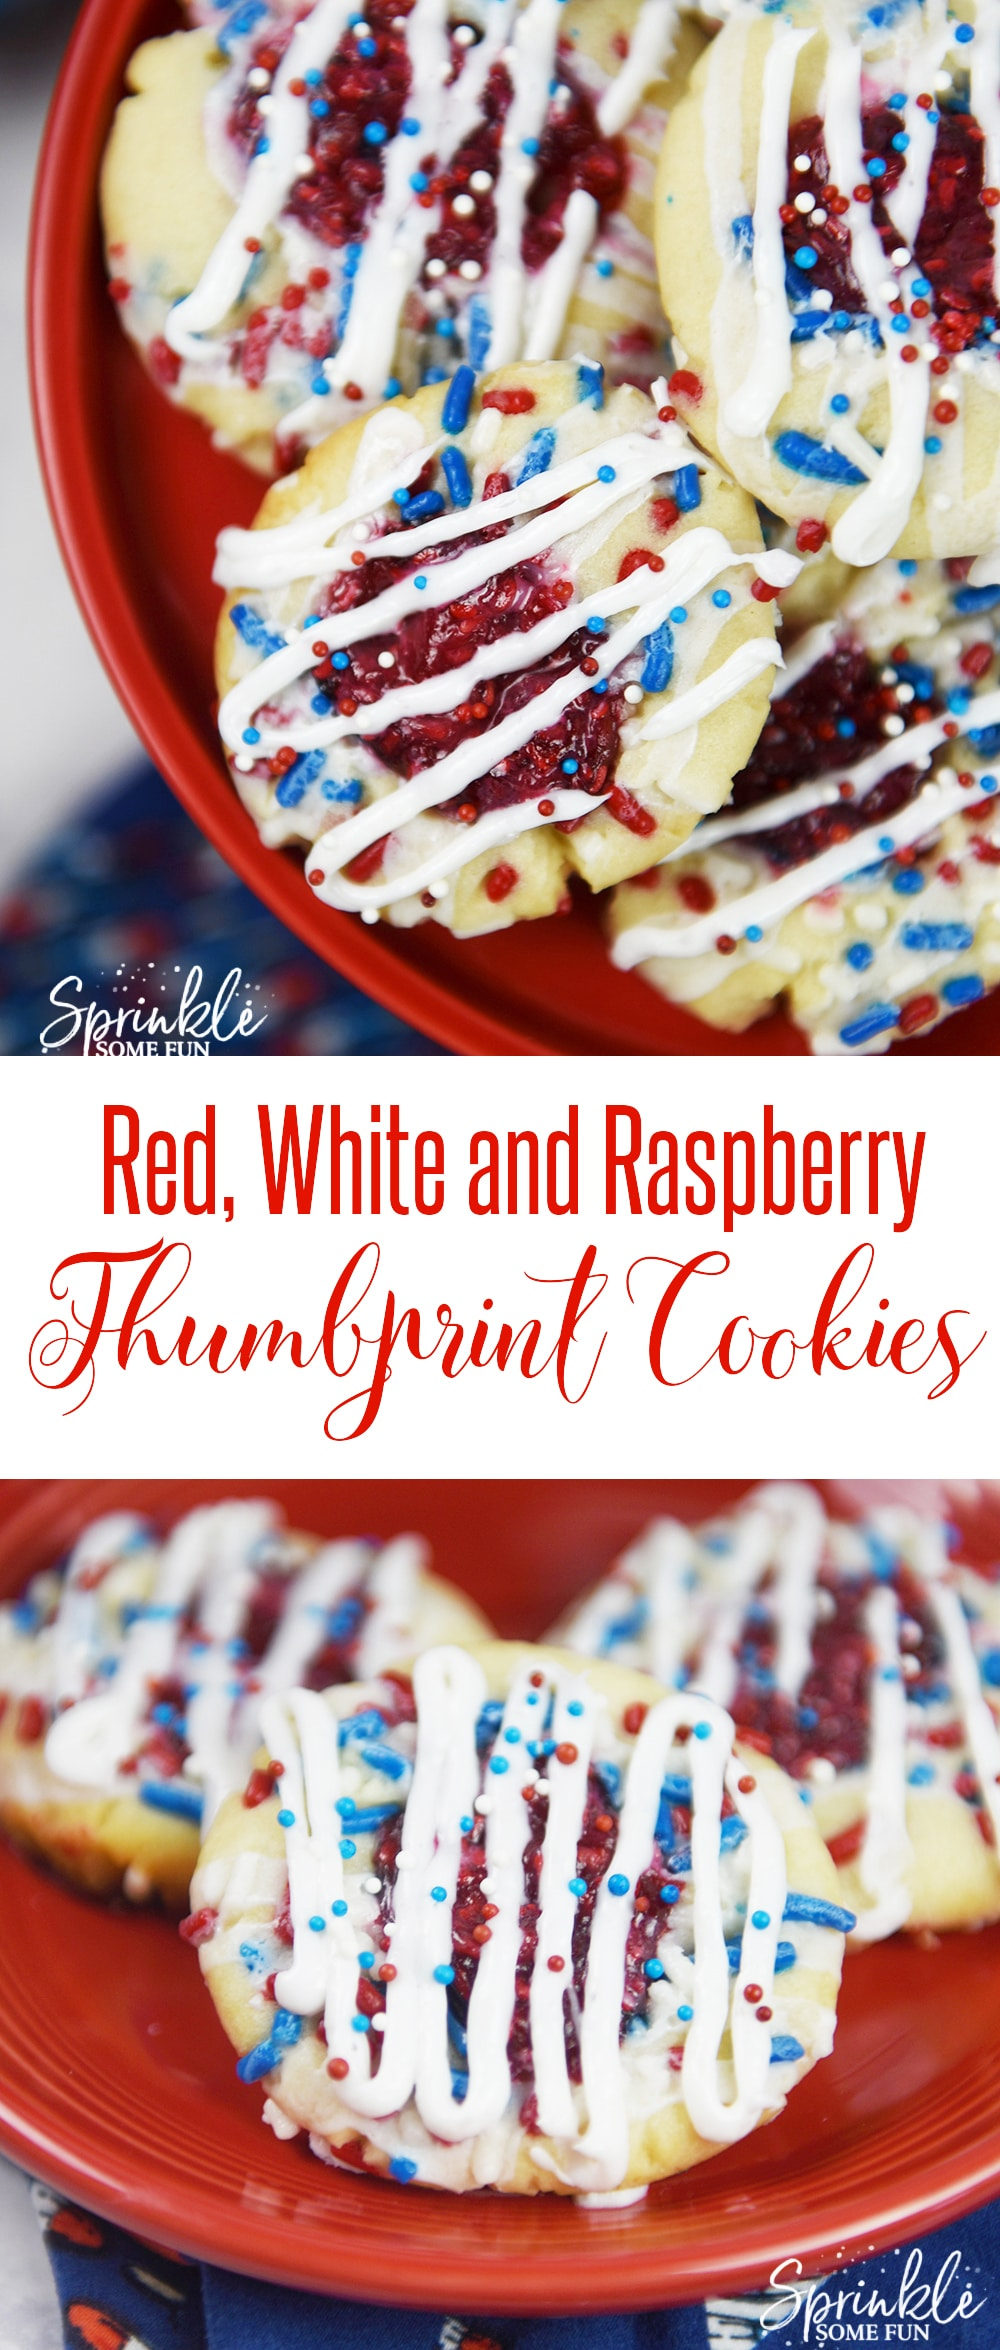 These Red, White, and Raspberry Thumbprint Cookies are a new favorite treat of ours because they are both sweet and tangy!